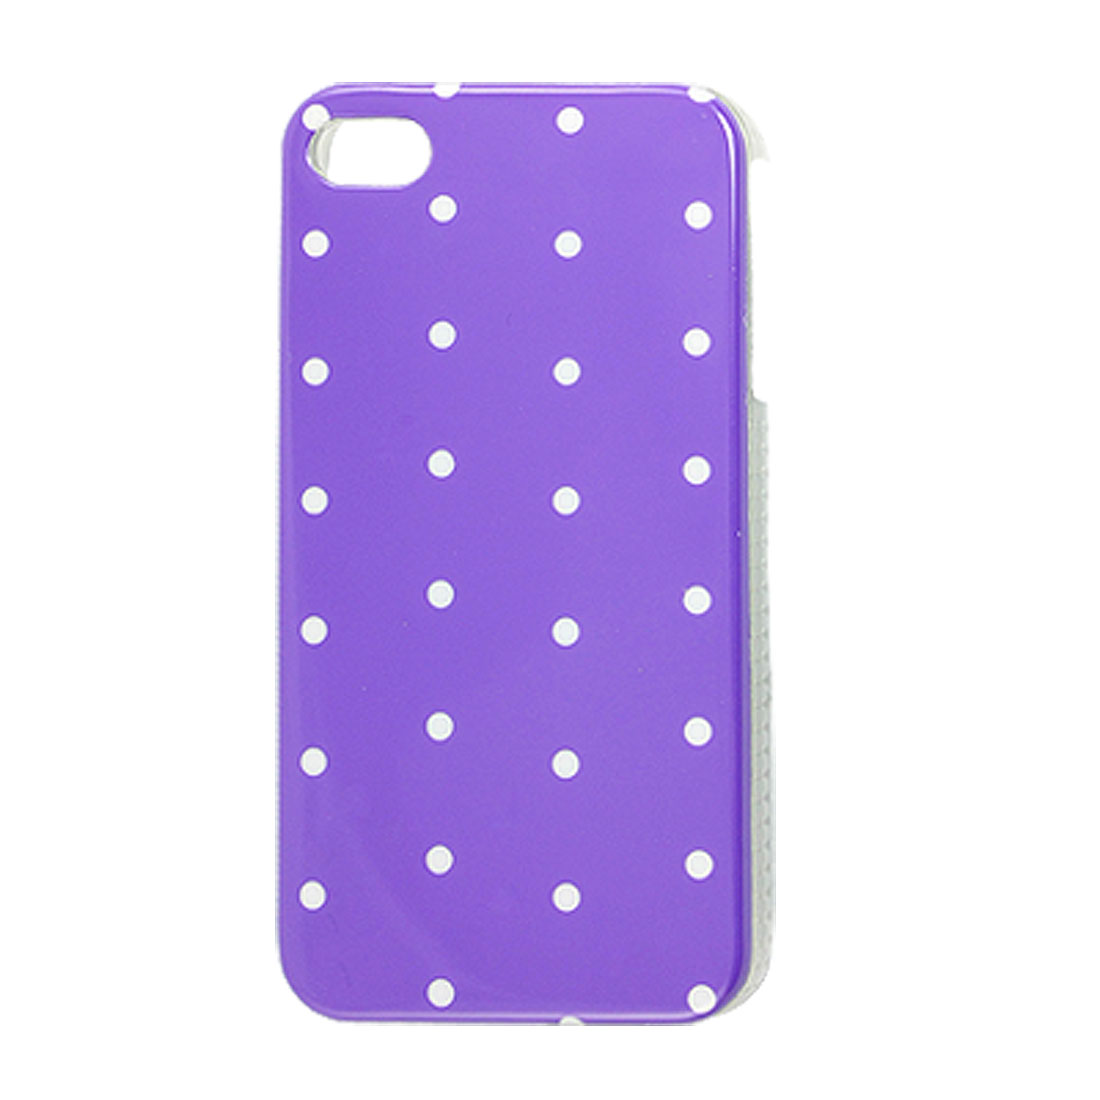 IMD White Dots Printed Purple Plastic Back Cover for iPhone 4 4G 4S